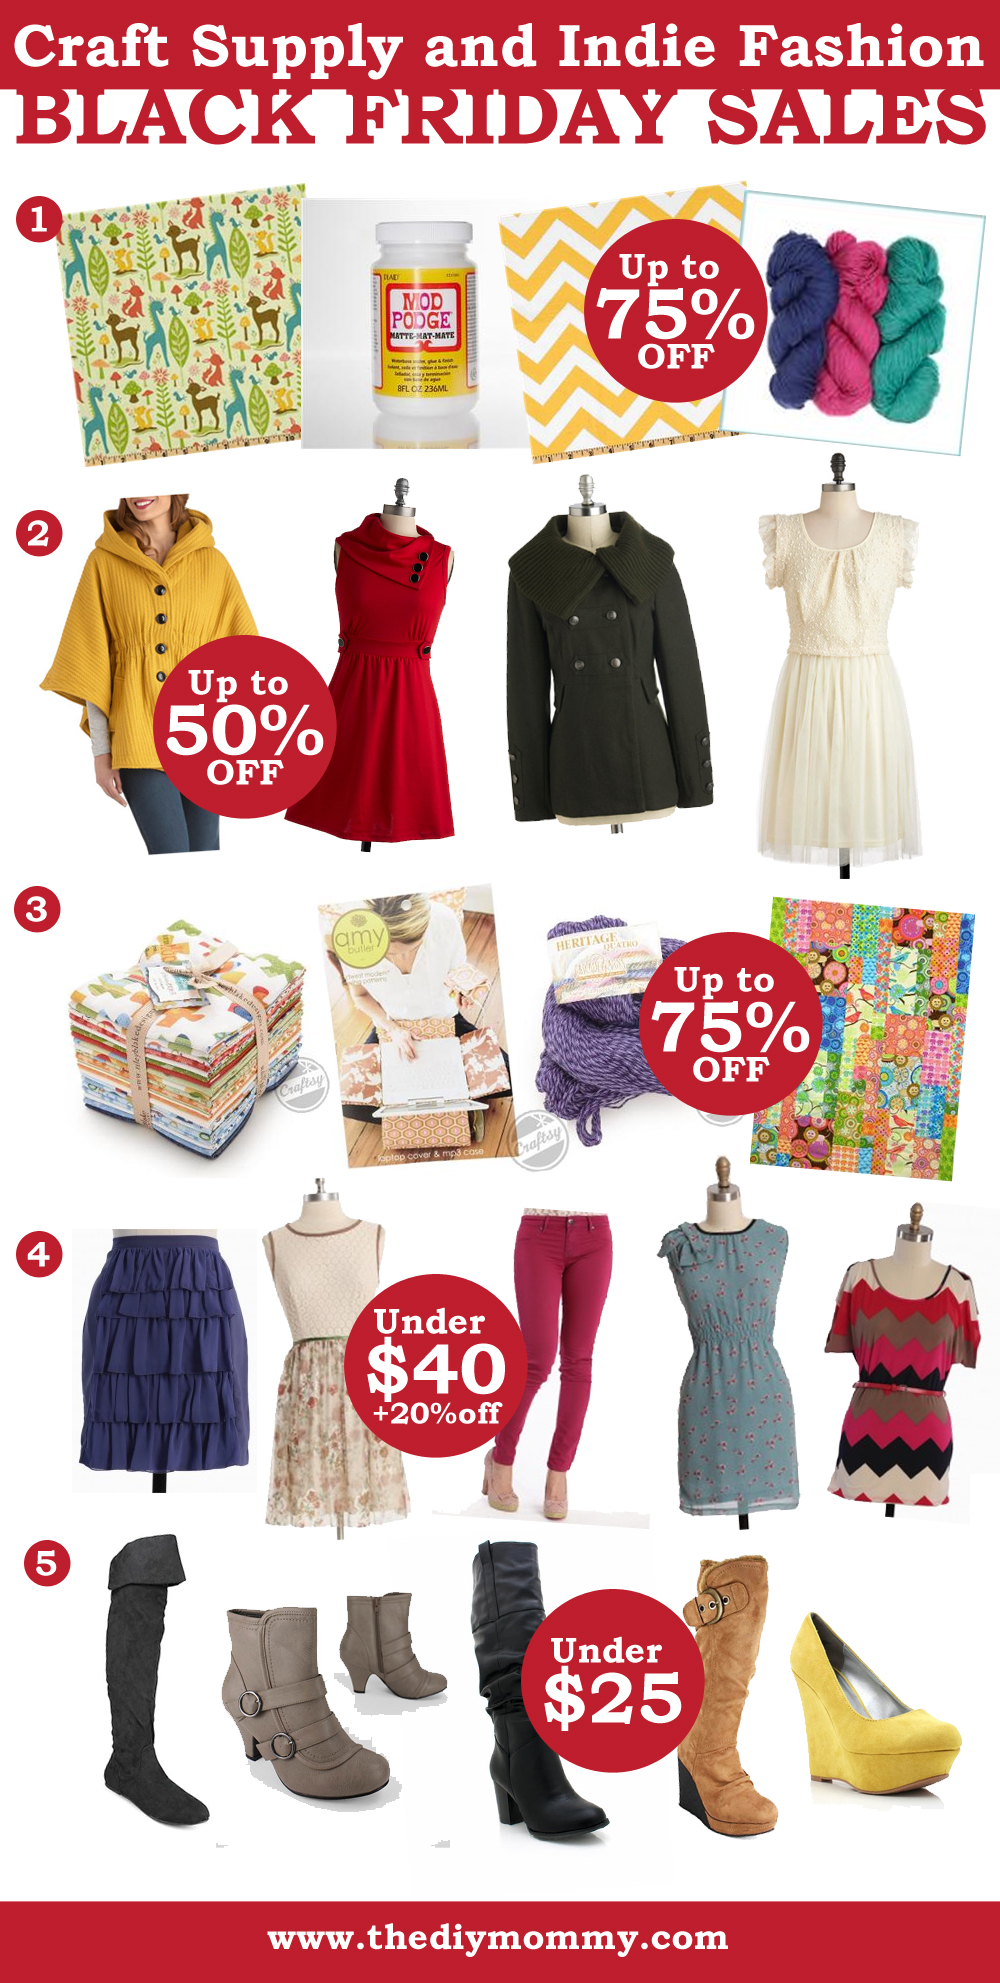 Amazing Craft Supply and Indie Fashion Black Friday Sales & Coupon Codes from The DIY Mommy